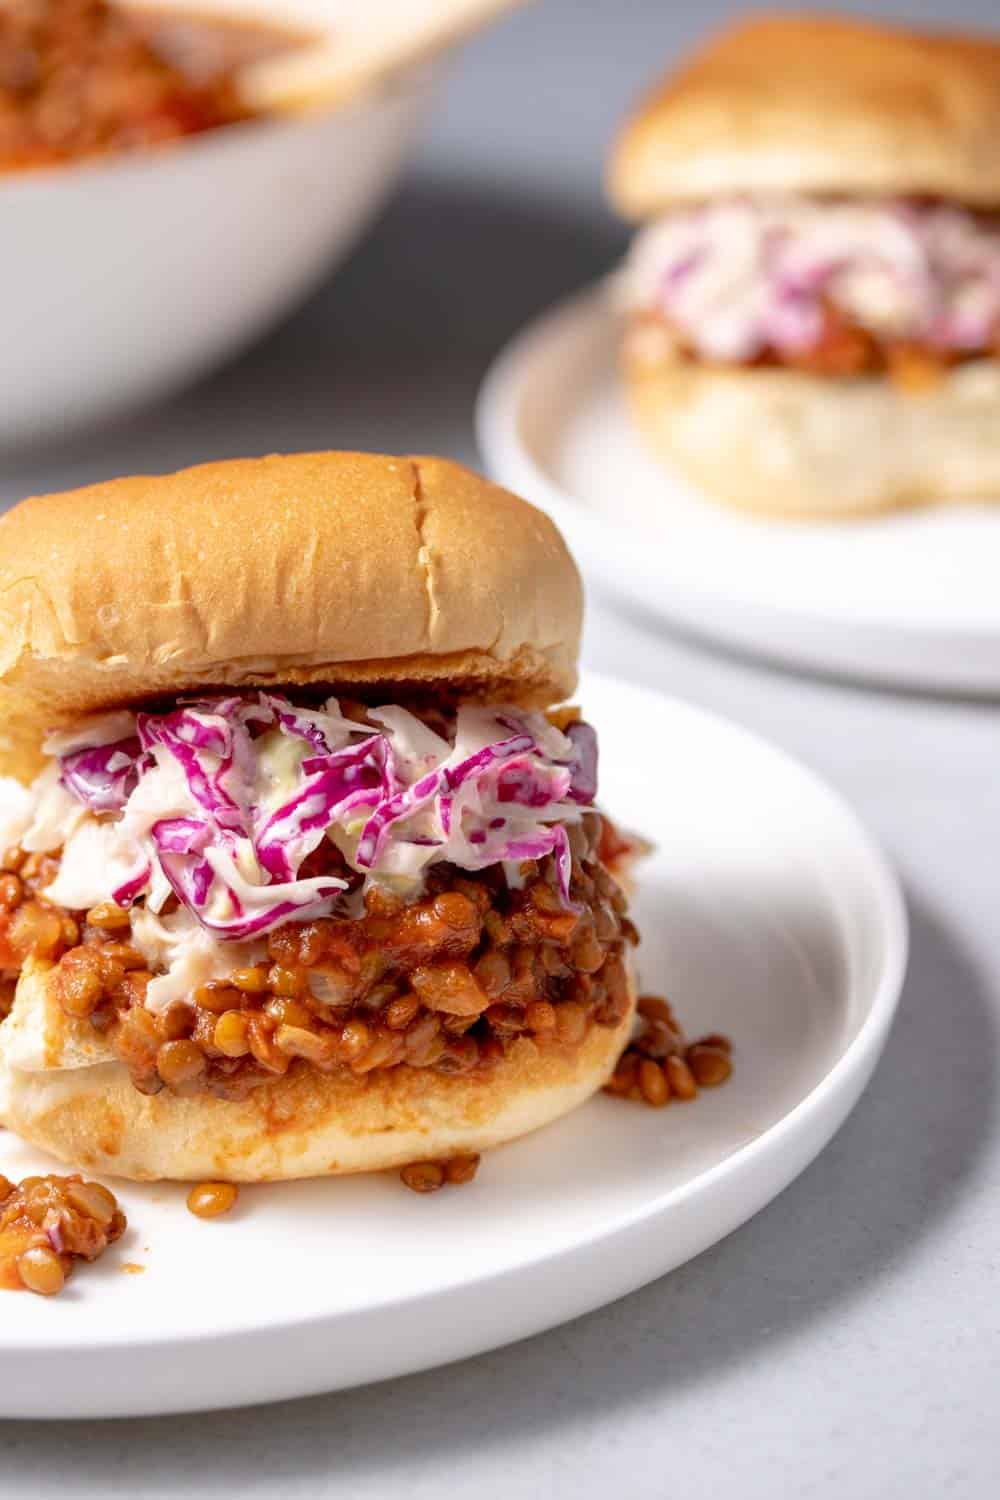 Sloppy joes served with fresh coleslaw